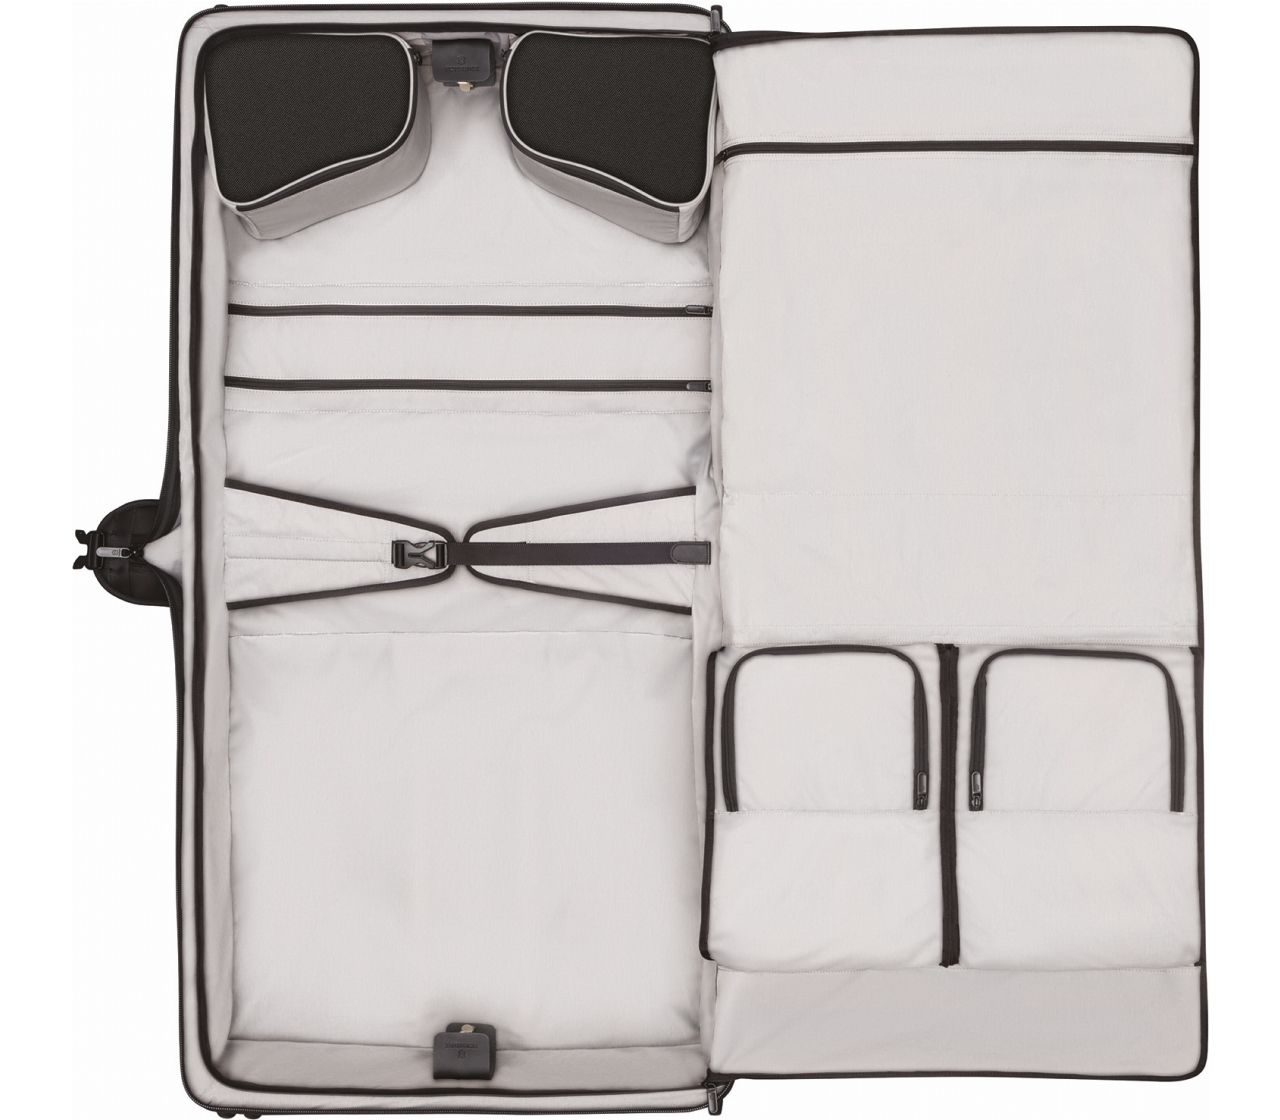 Lexicon Dual-Caster Garment Bag-601187